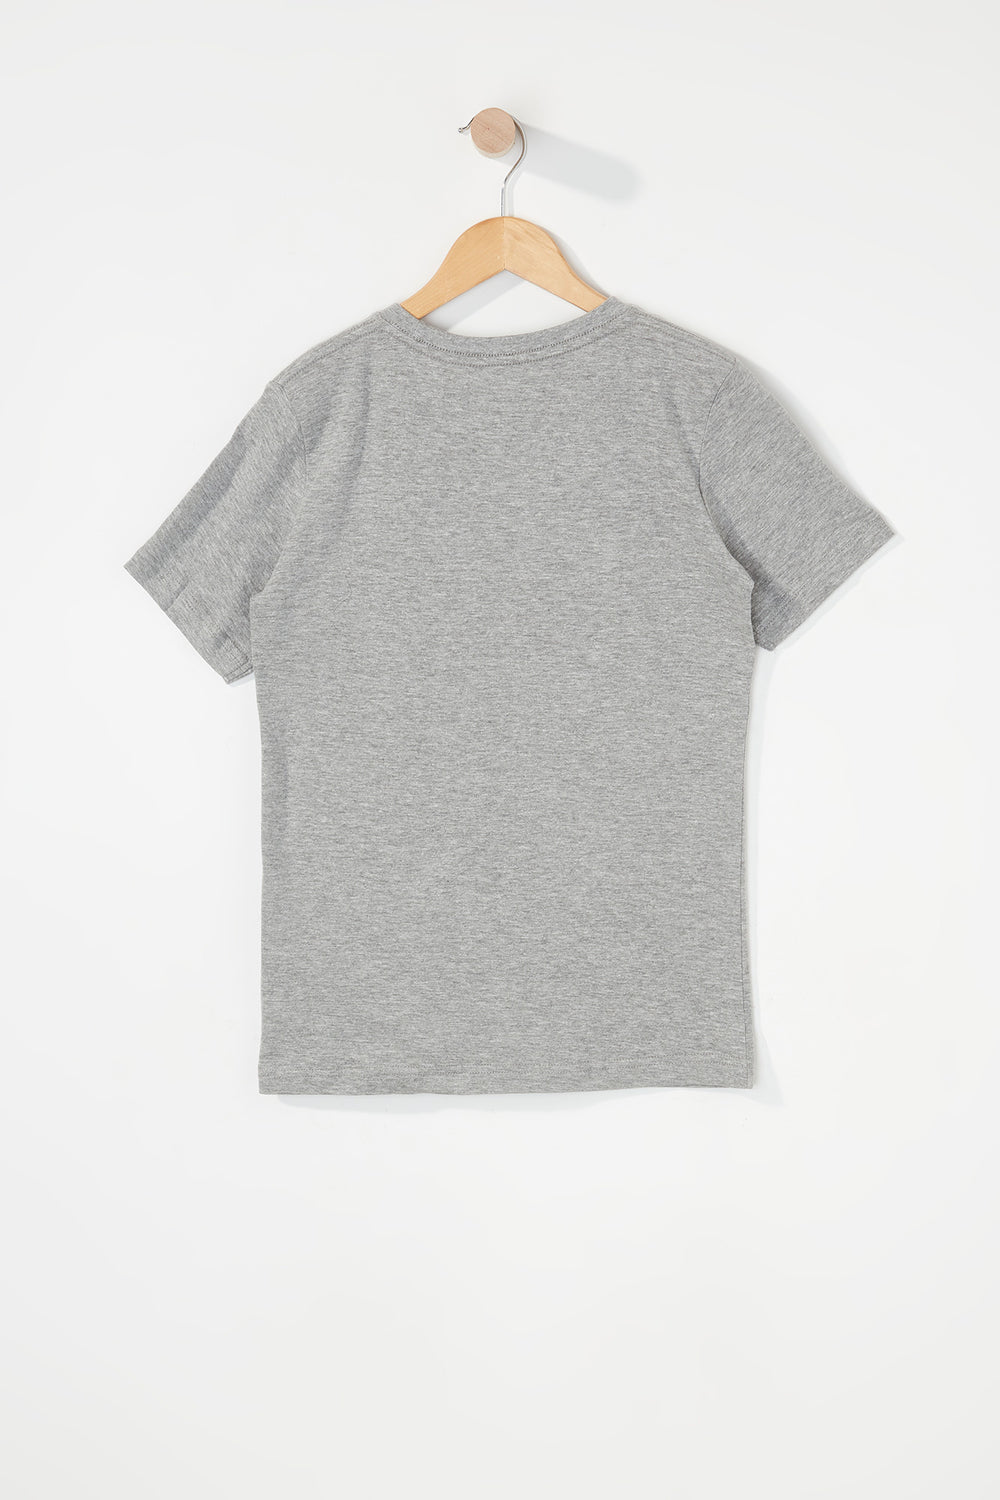 Zoo York Boys Embroidered Logo Pocket T-Shirt Heather Grey